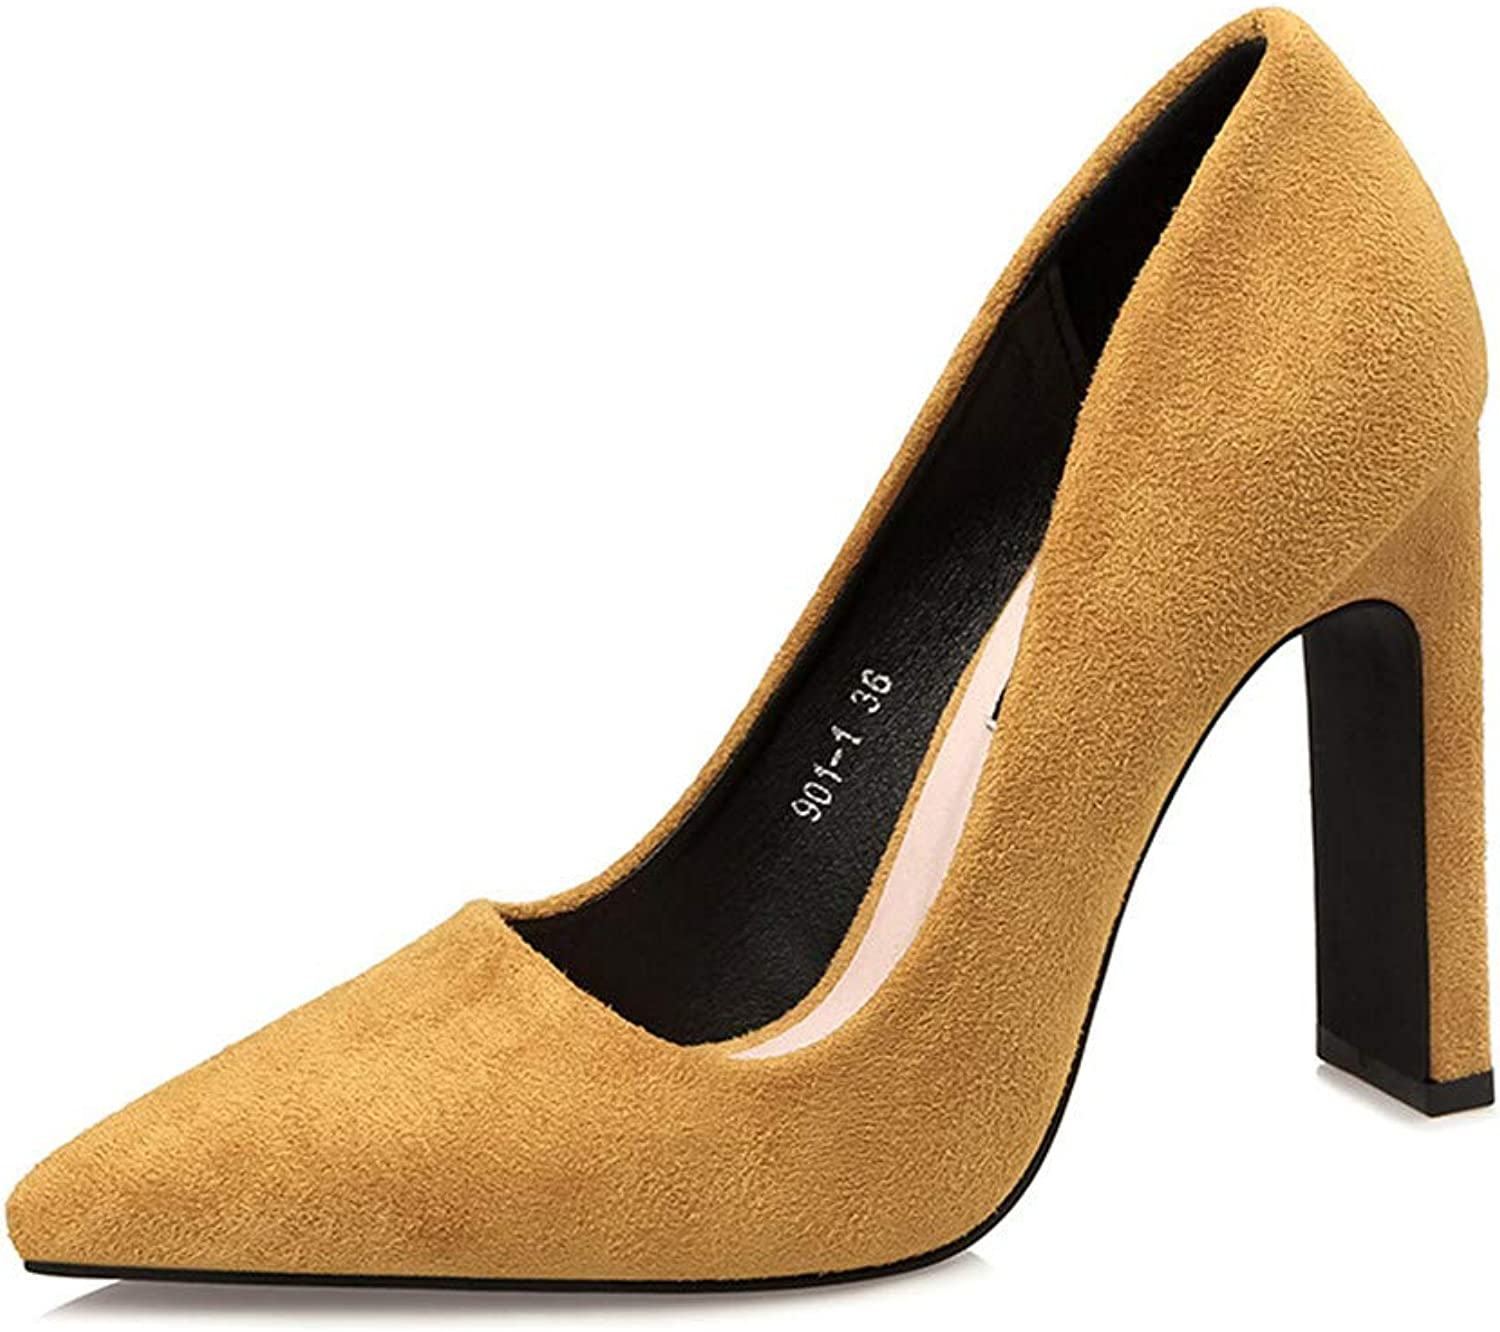 Women's Sexy Coarse heelPointed Toe 4.13 inch High Heel Slip On Stiletto Pumps Large Size Basic shoes,Yellow,38